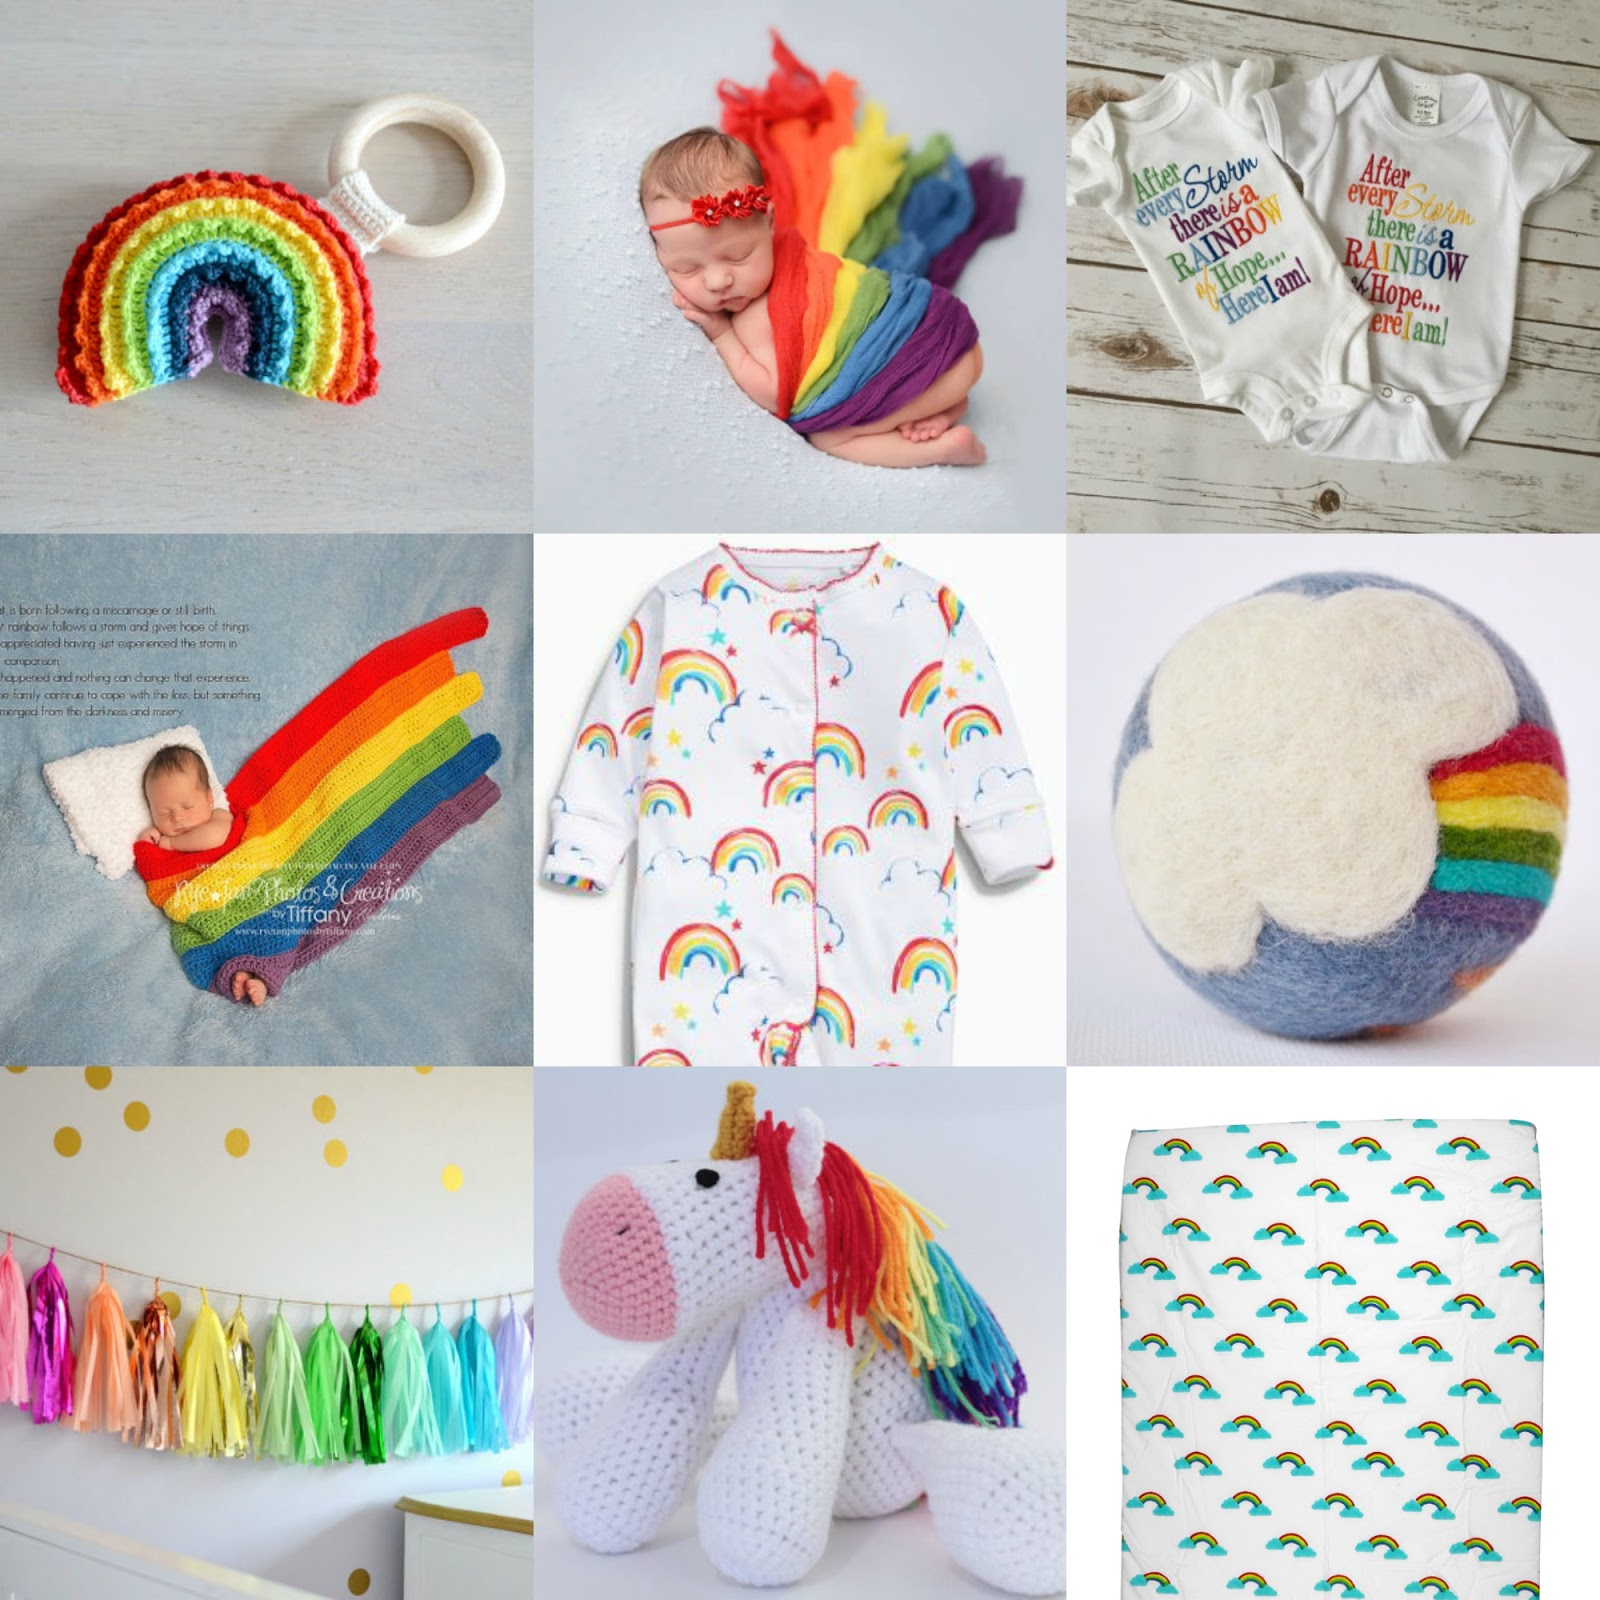 Gift ideas for a rainbow baby ♥